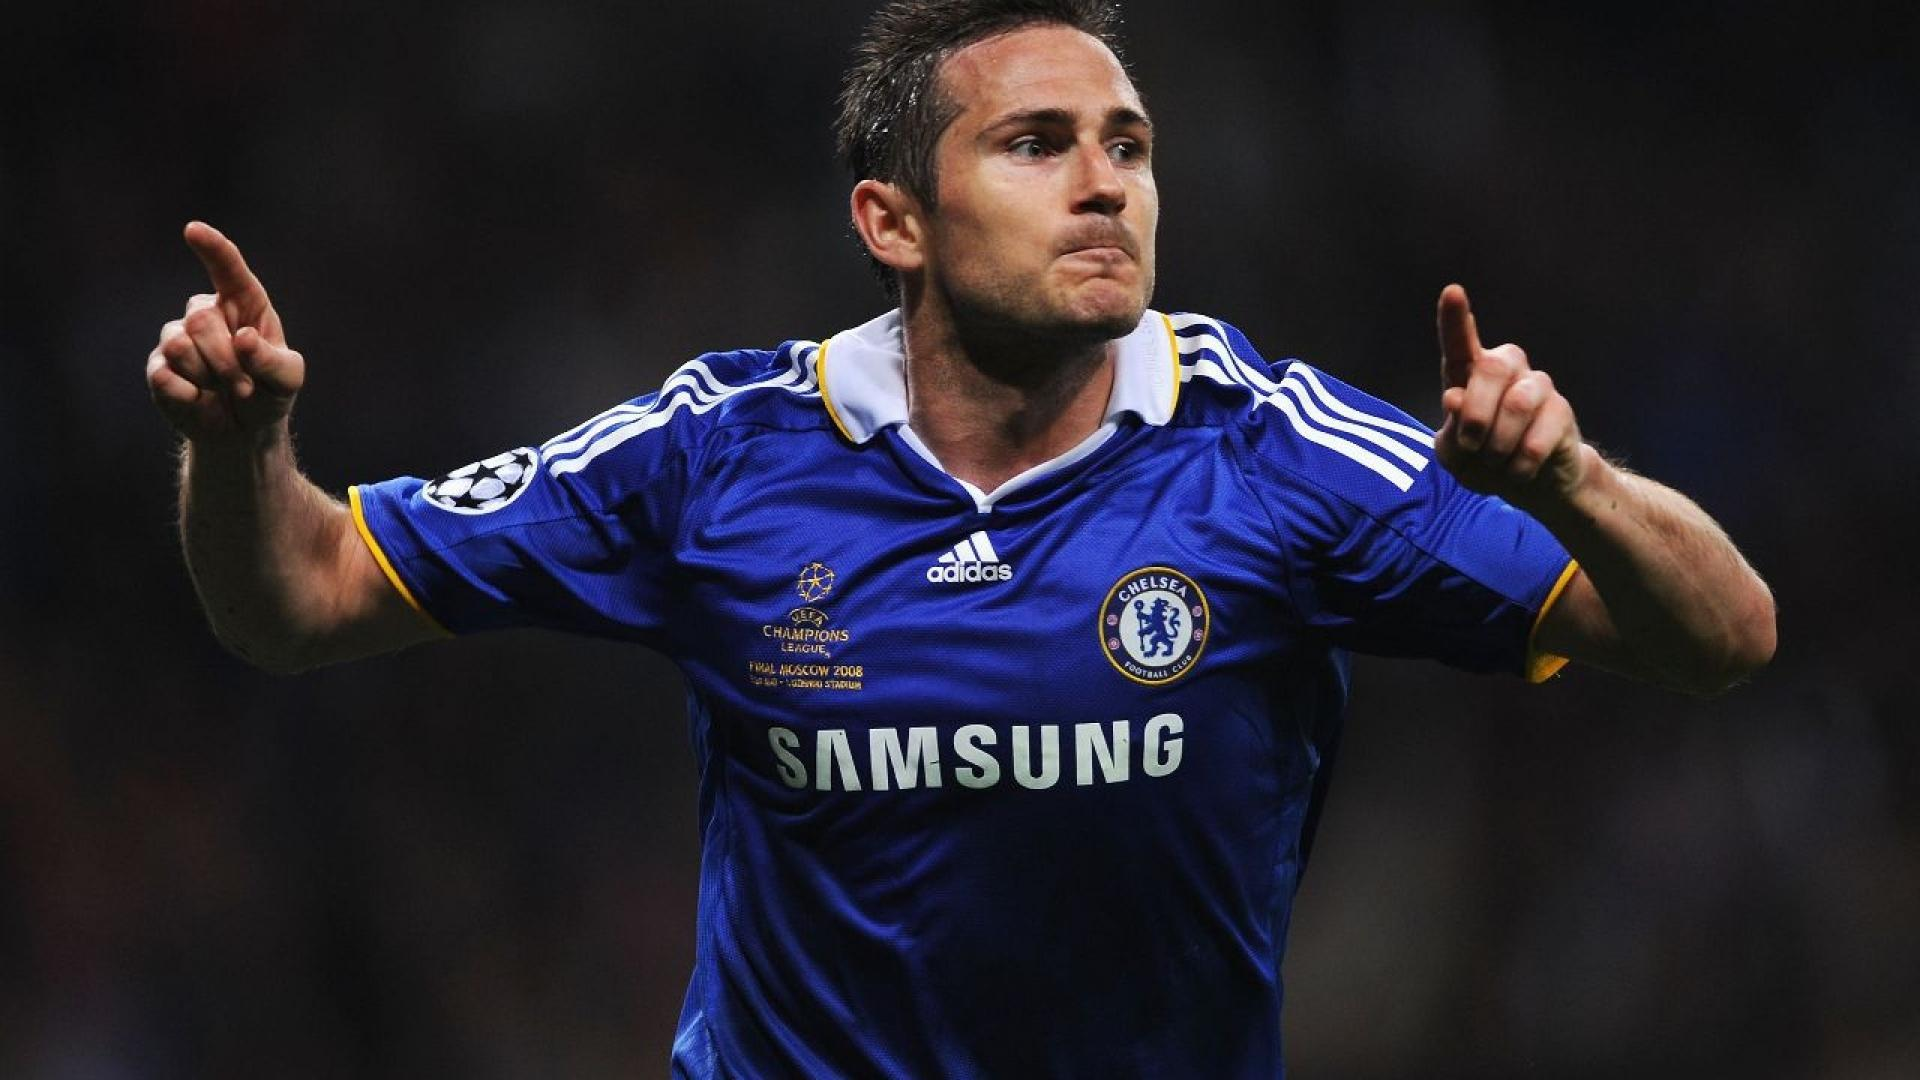 Frank lampard wallpapers wallpaper cave for Www frank